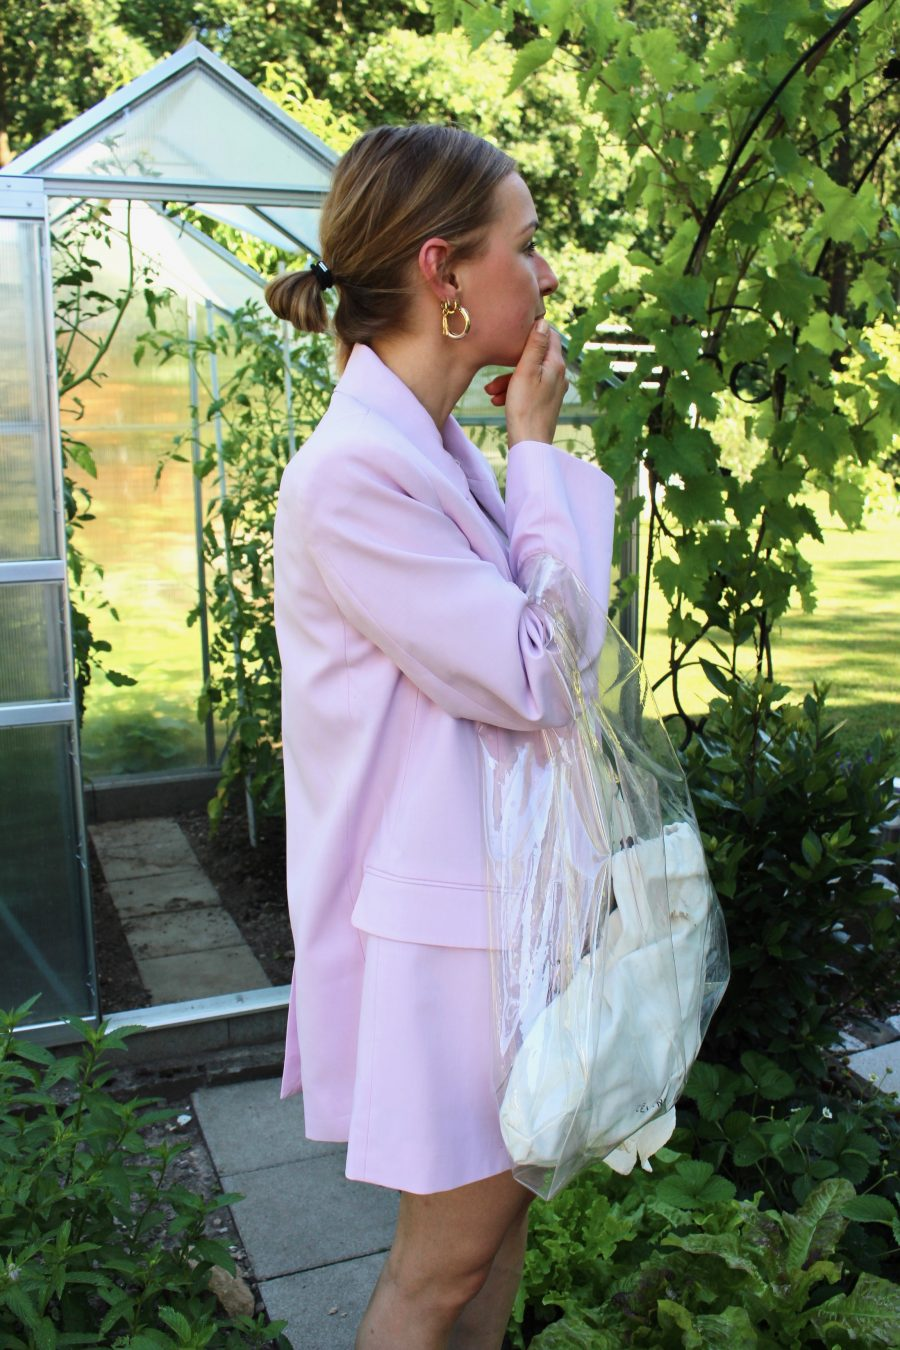 Fashion blogger anna borisovna